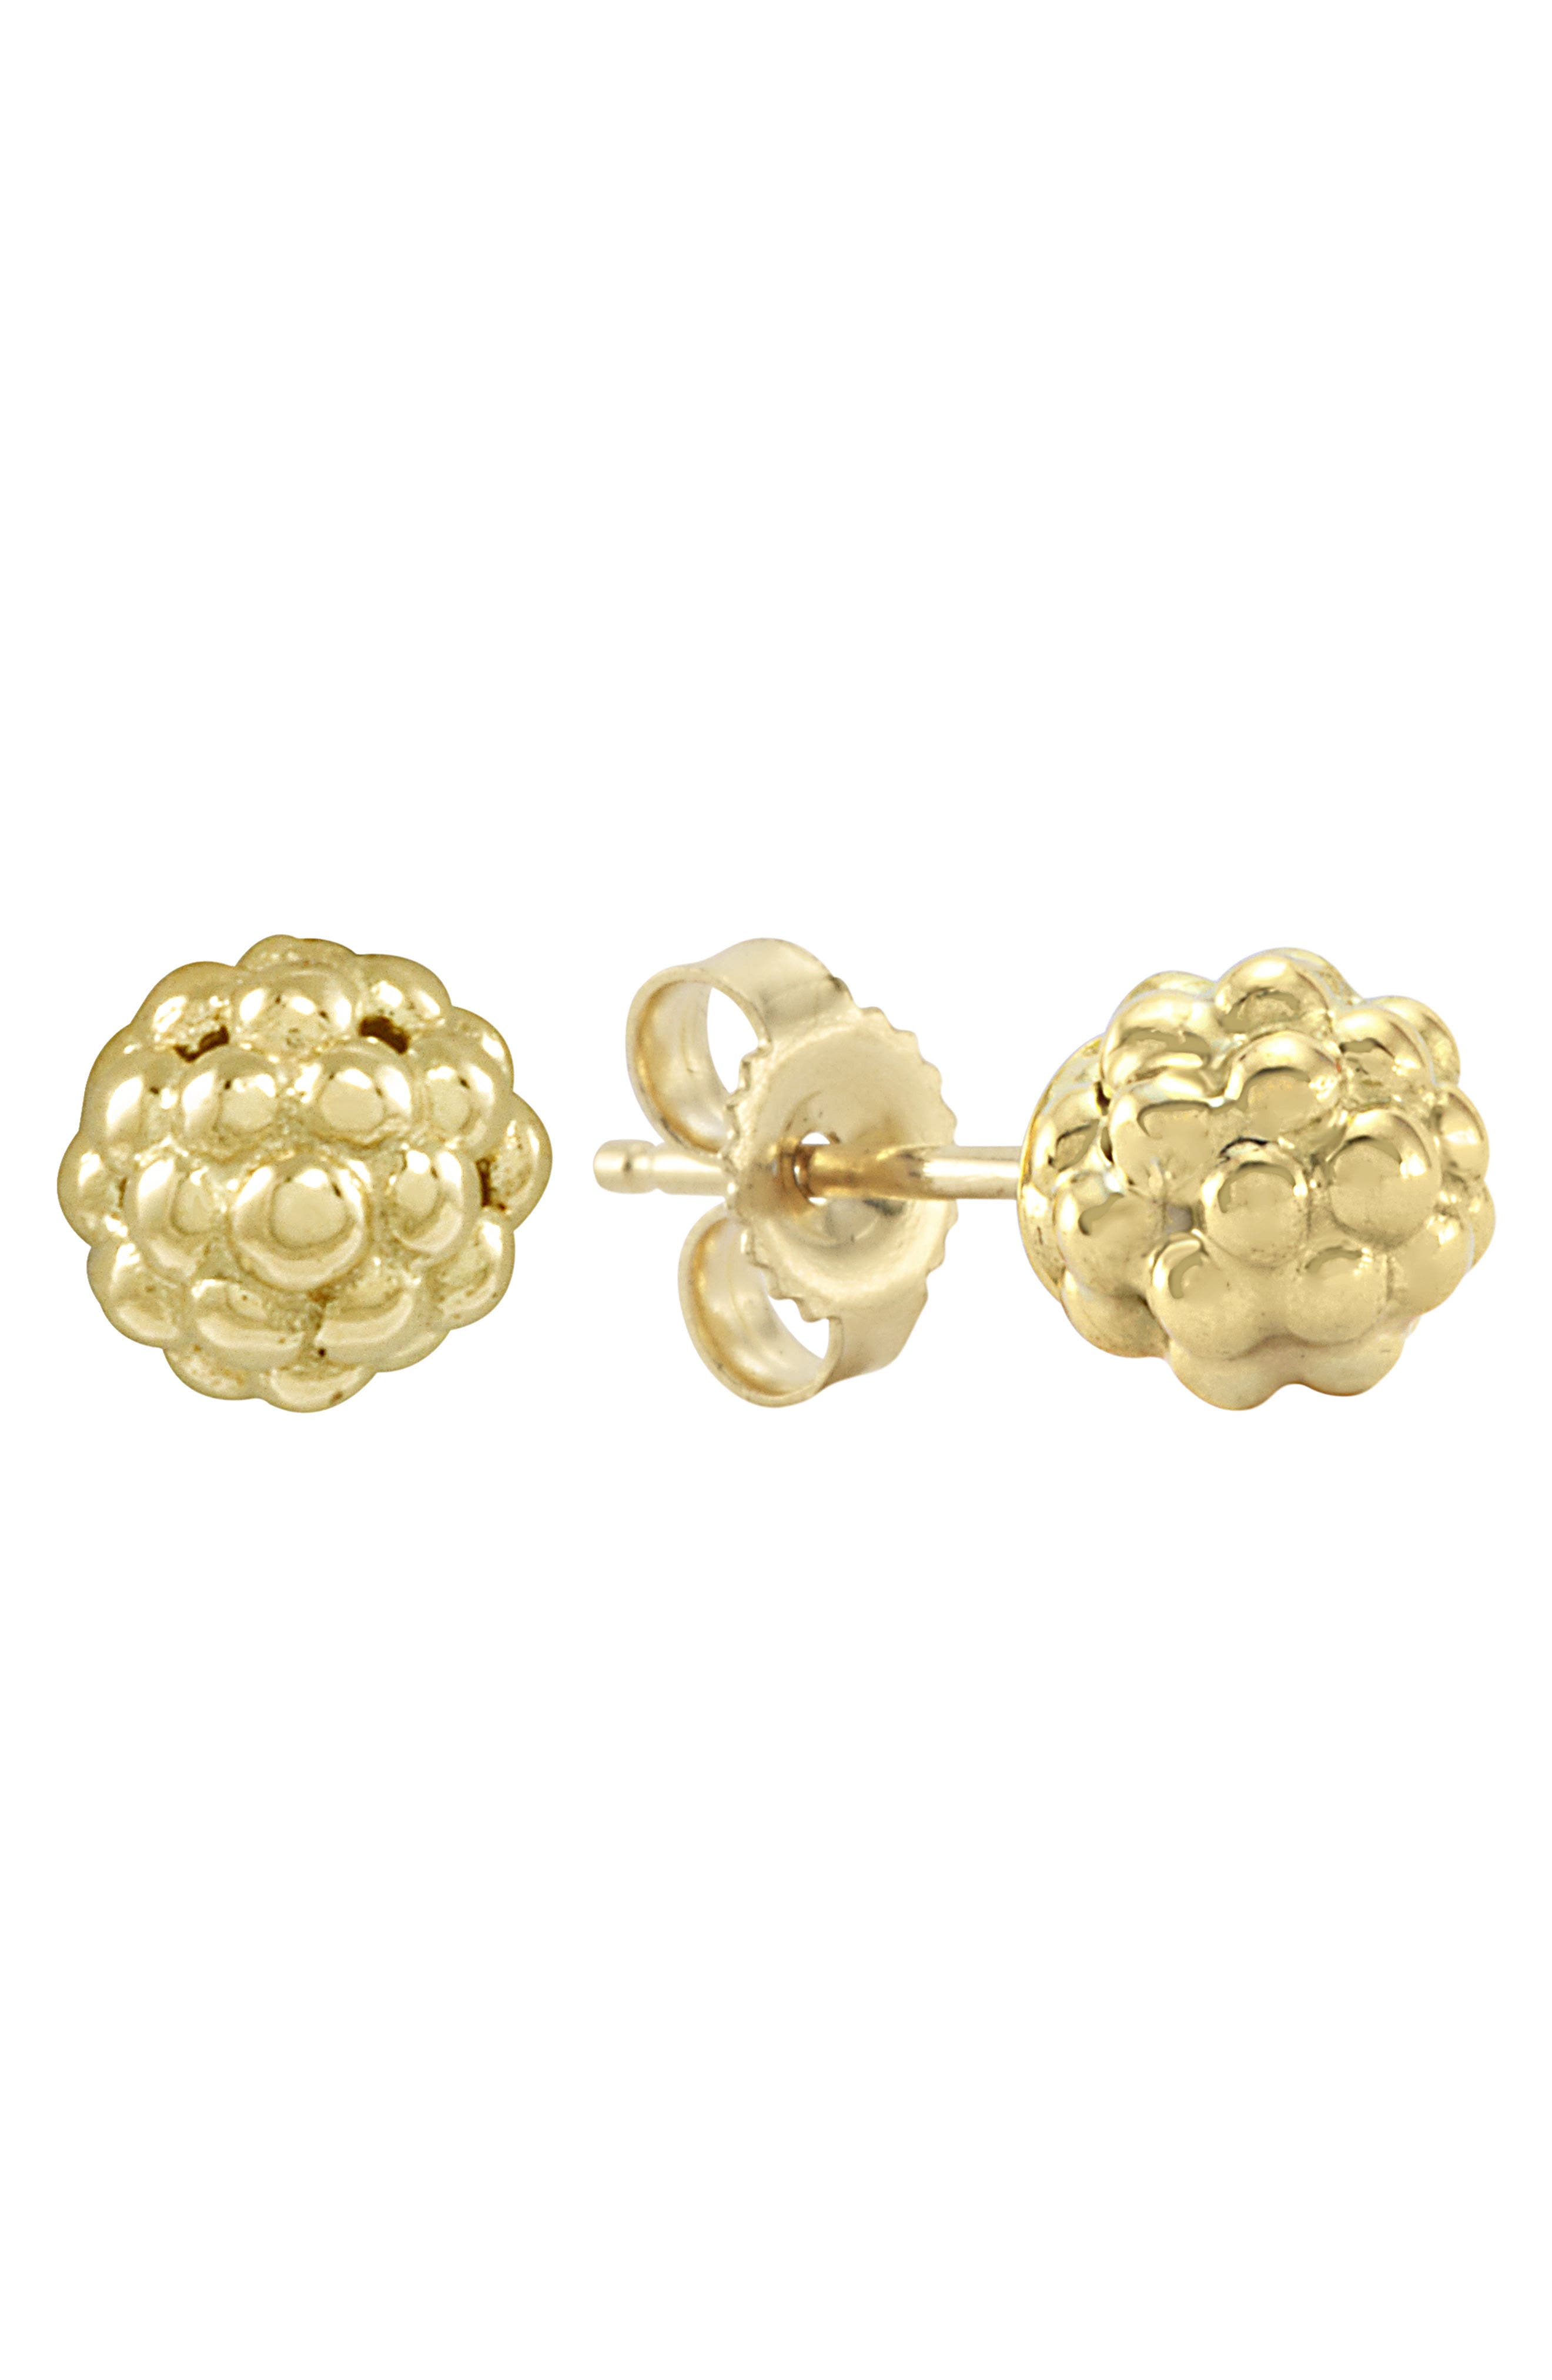 'Caviar Icon' Stud Earrings,                             Alternate thumbnail 2, color,                             GOLD